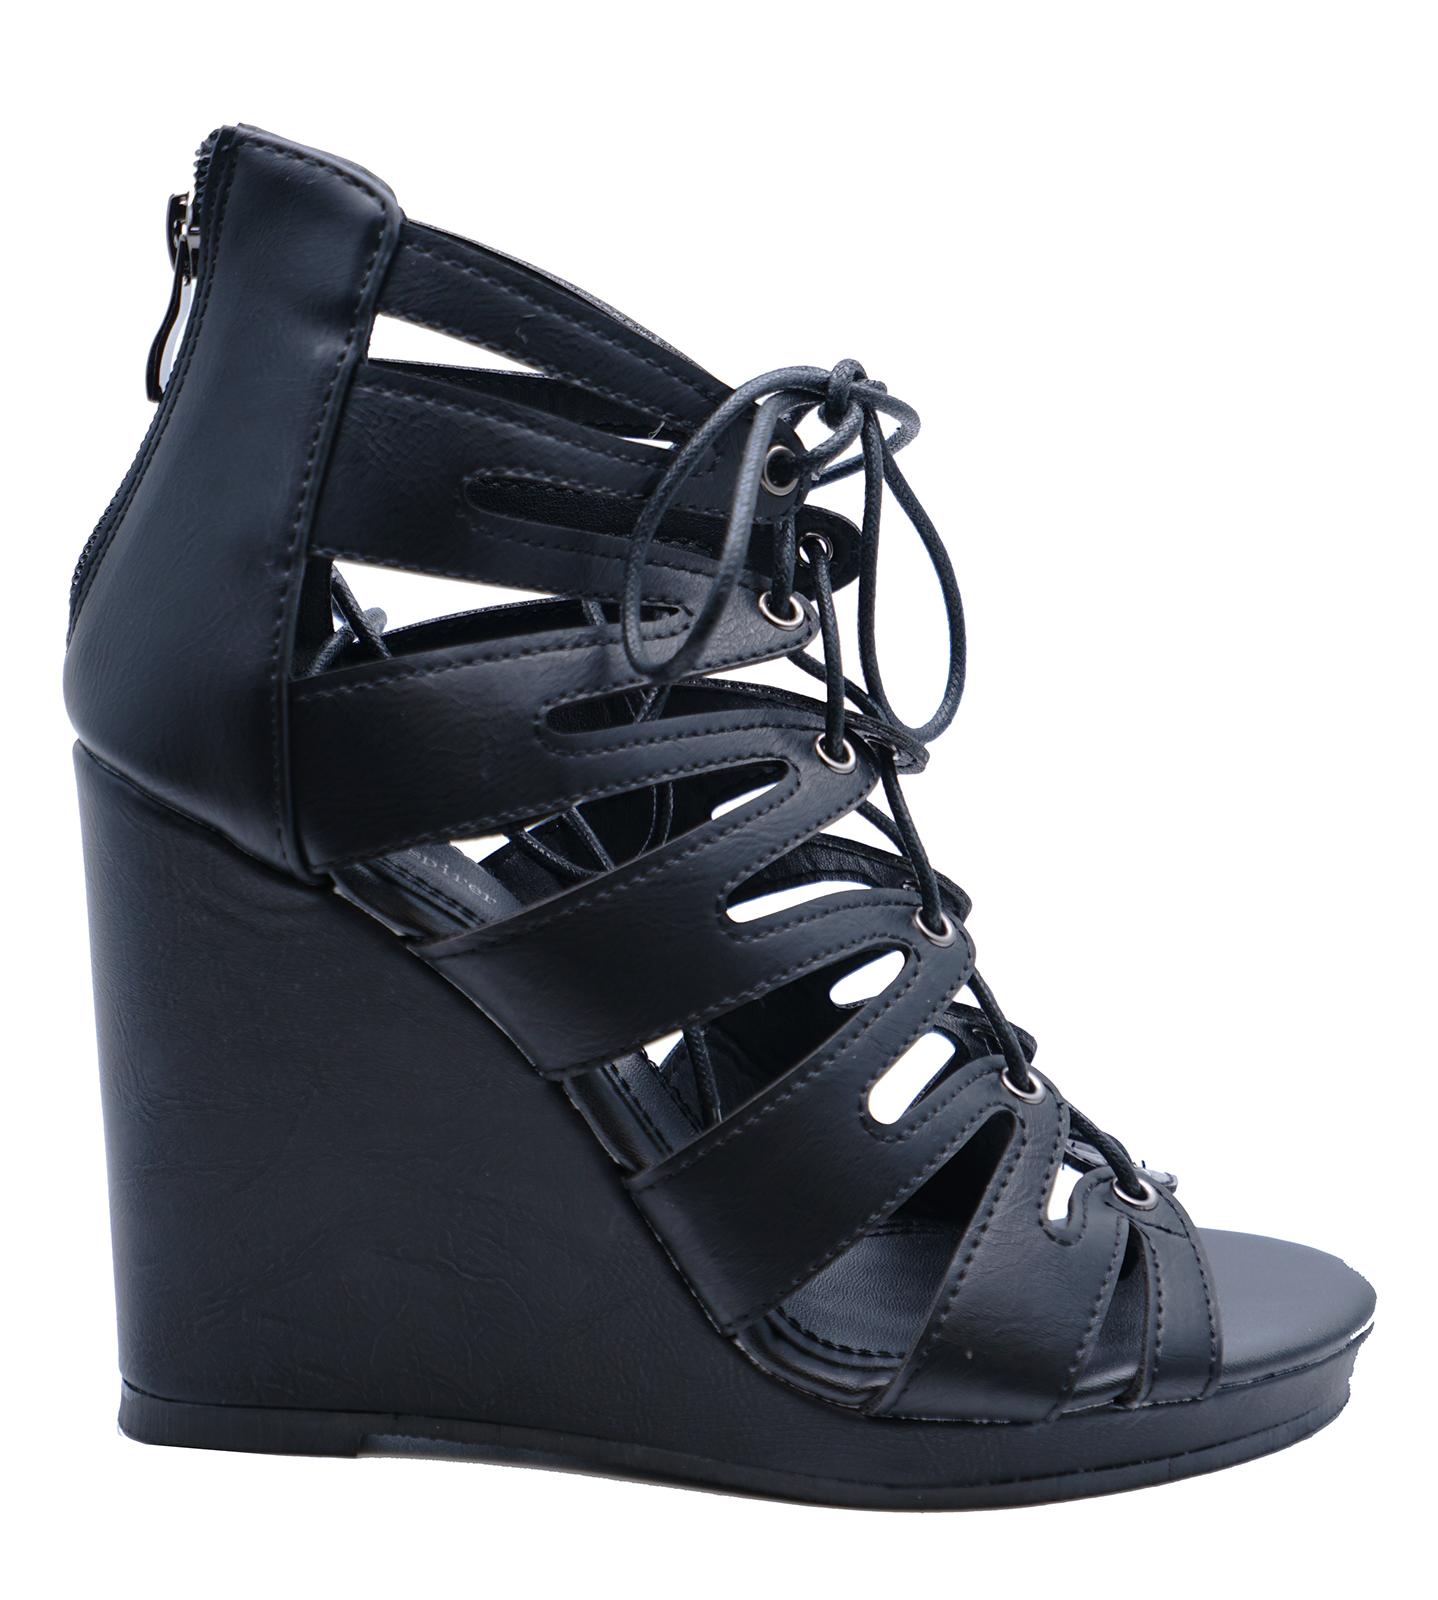 1e7835201405 Sentinel WOMENS BLACK LACE-UP SUMMER STRAPPY WEDGES SANDALS OPEN-TOE SHOES  SIZES 3-